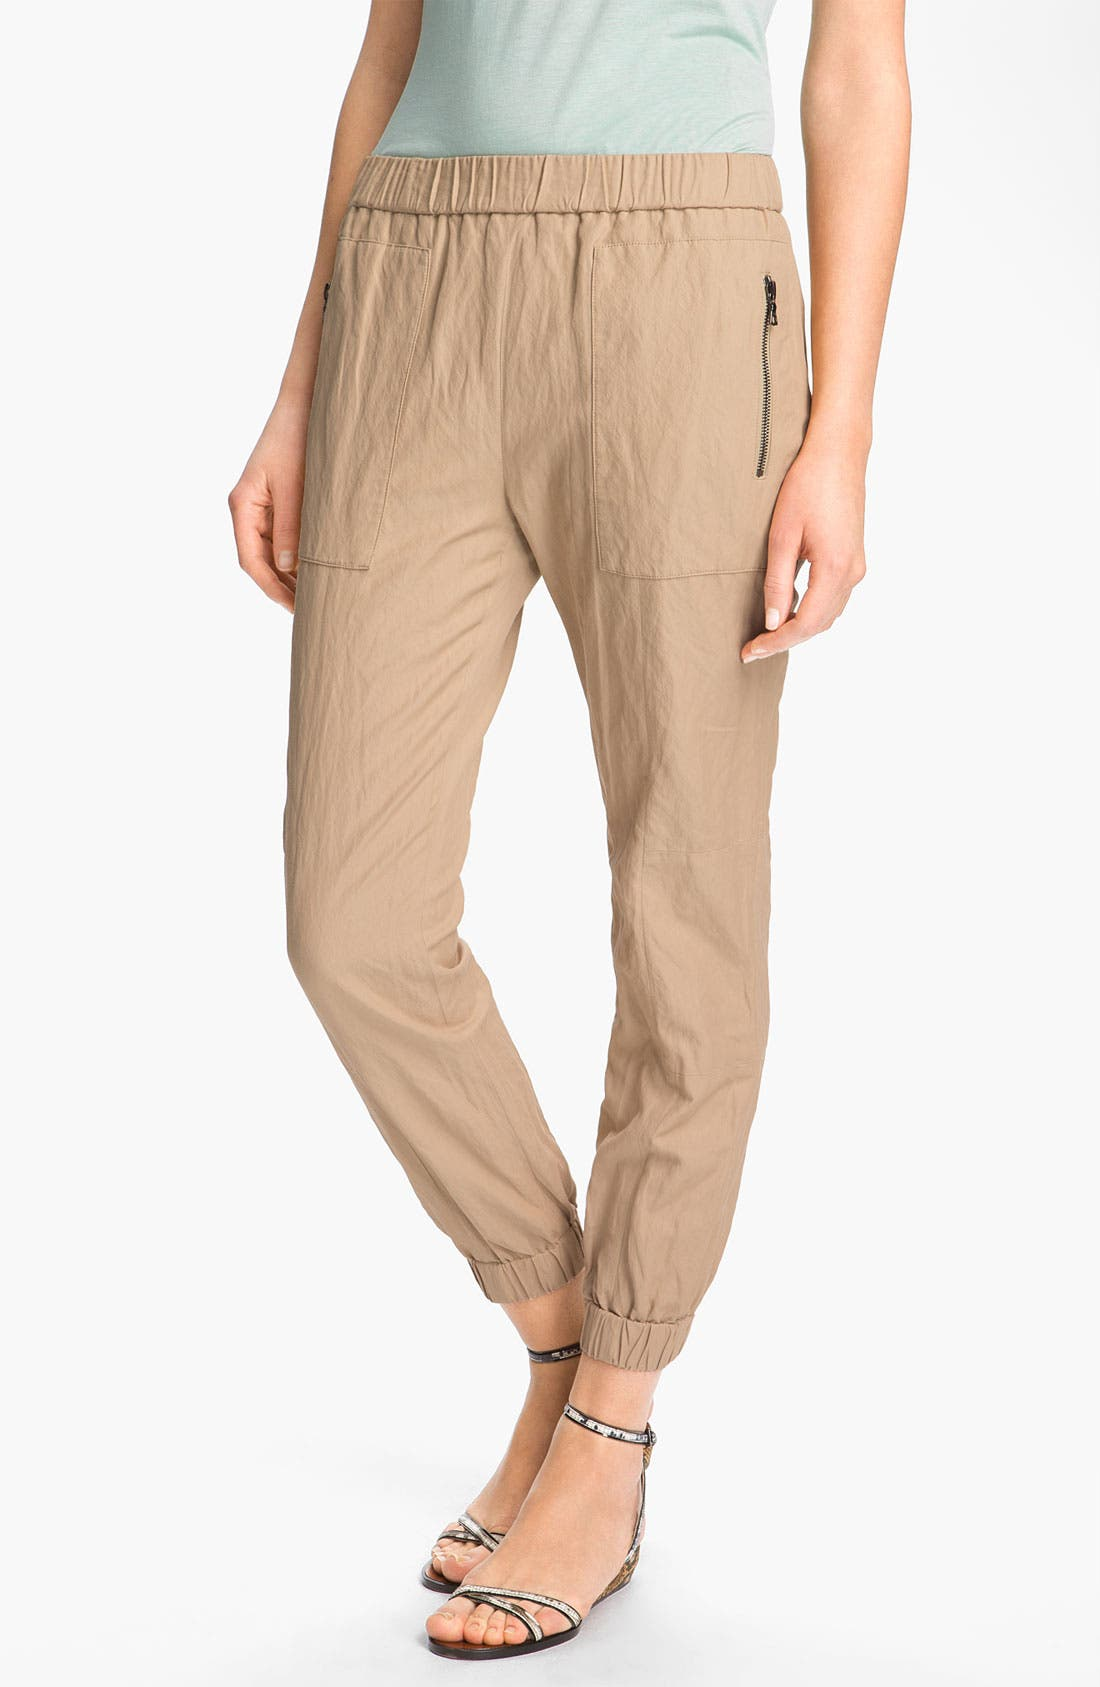 Alternate Image 1 Selected - J Brand Ready-to-Wear 'Garbo' Tapered Pants